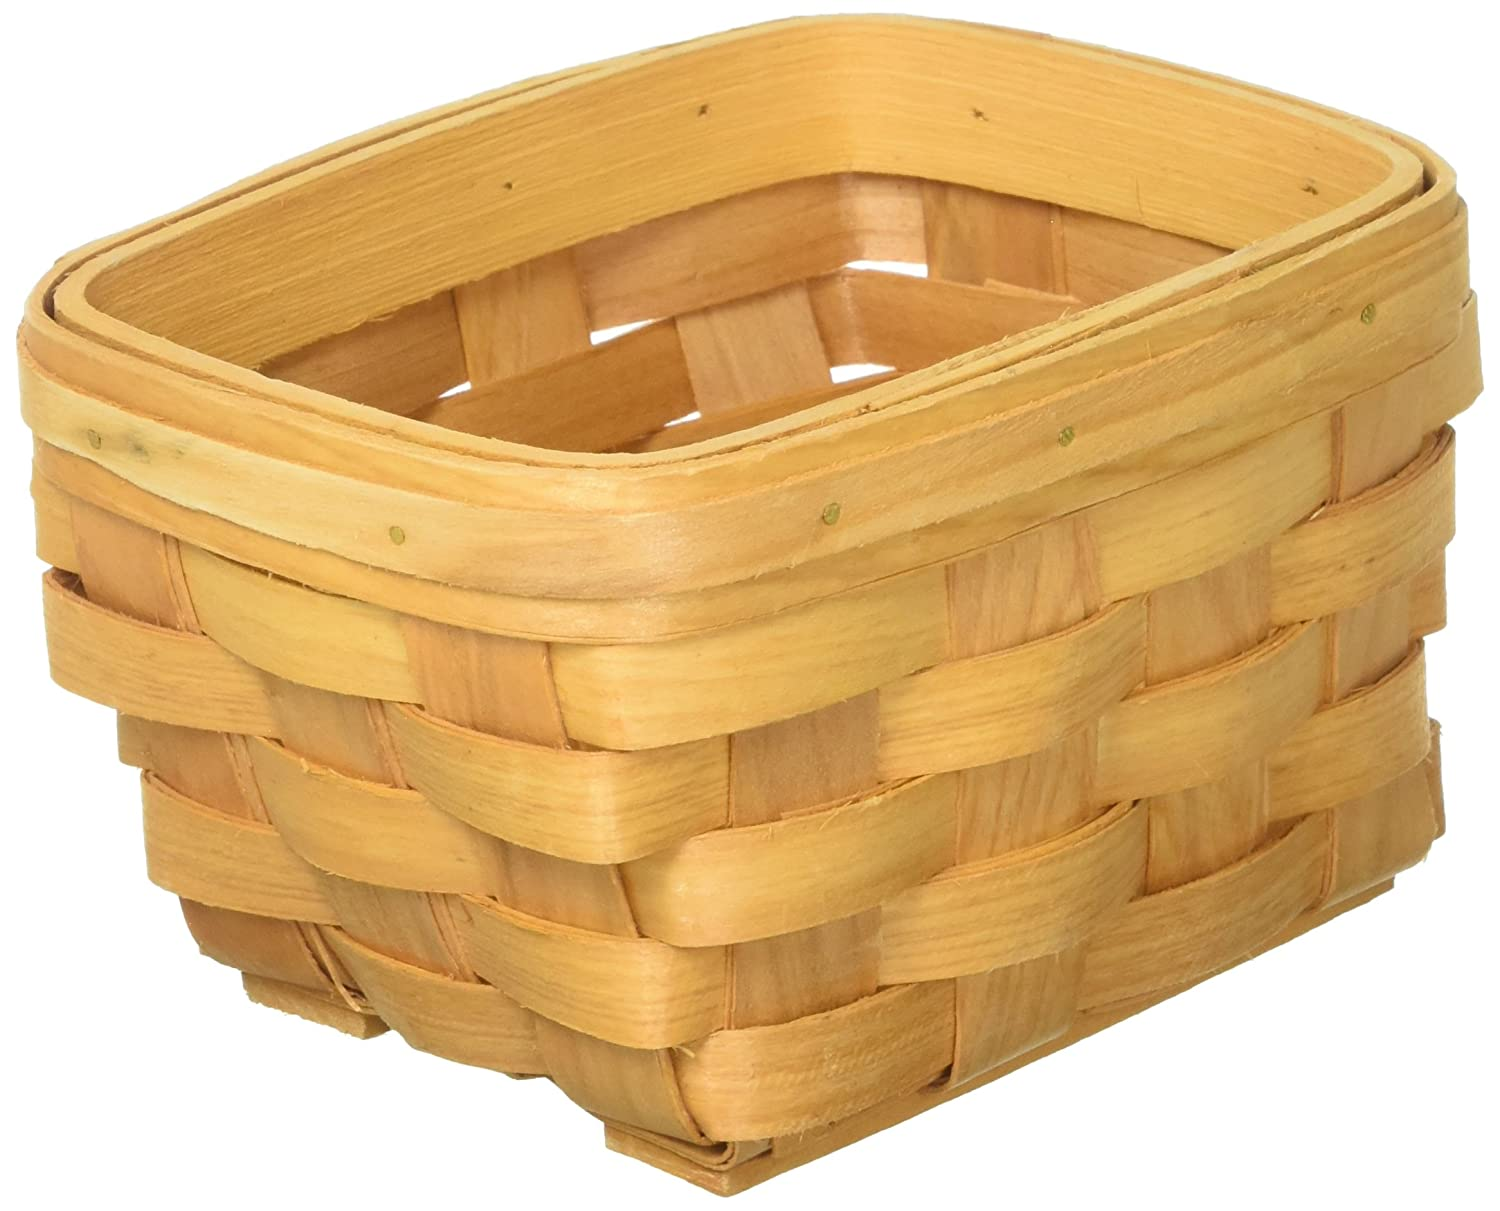 Darice 6.5 by 4.5 inch, Rectangle Wood Country Basket 2848-25